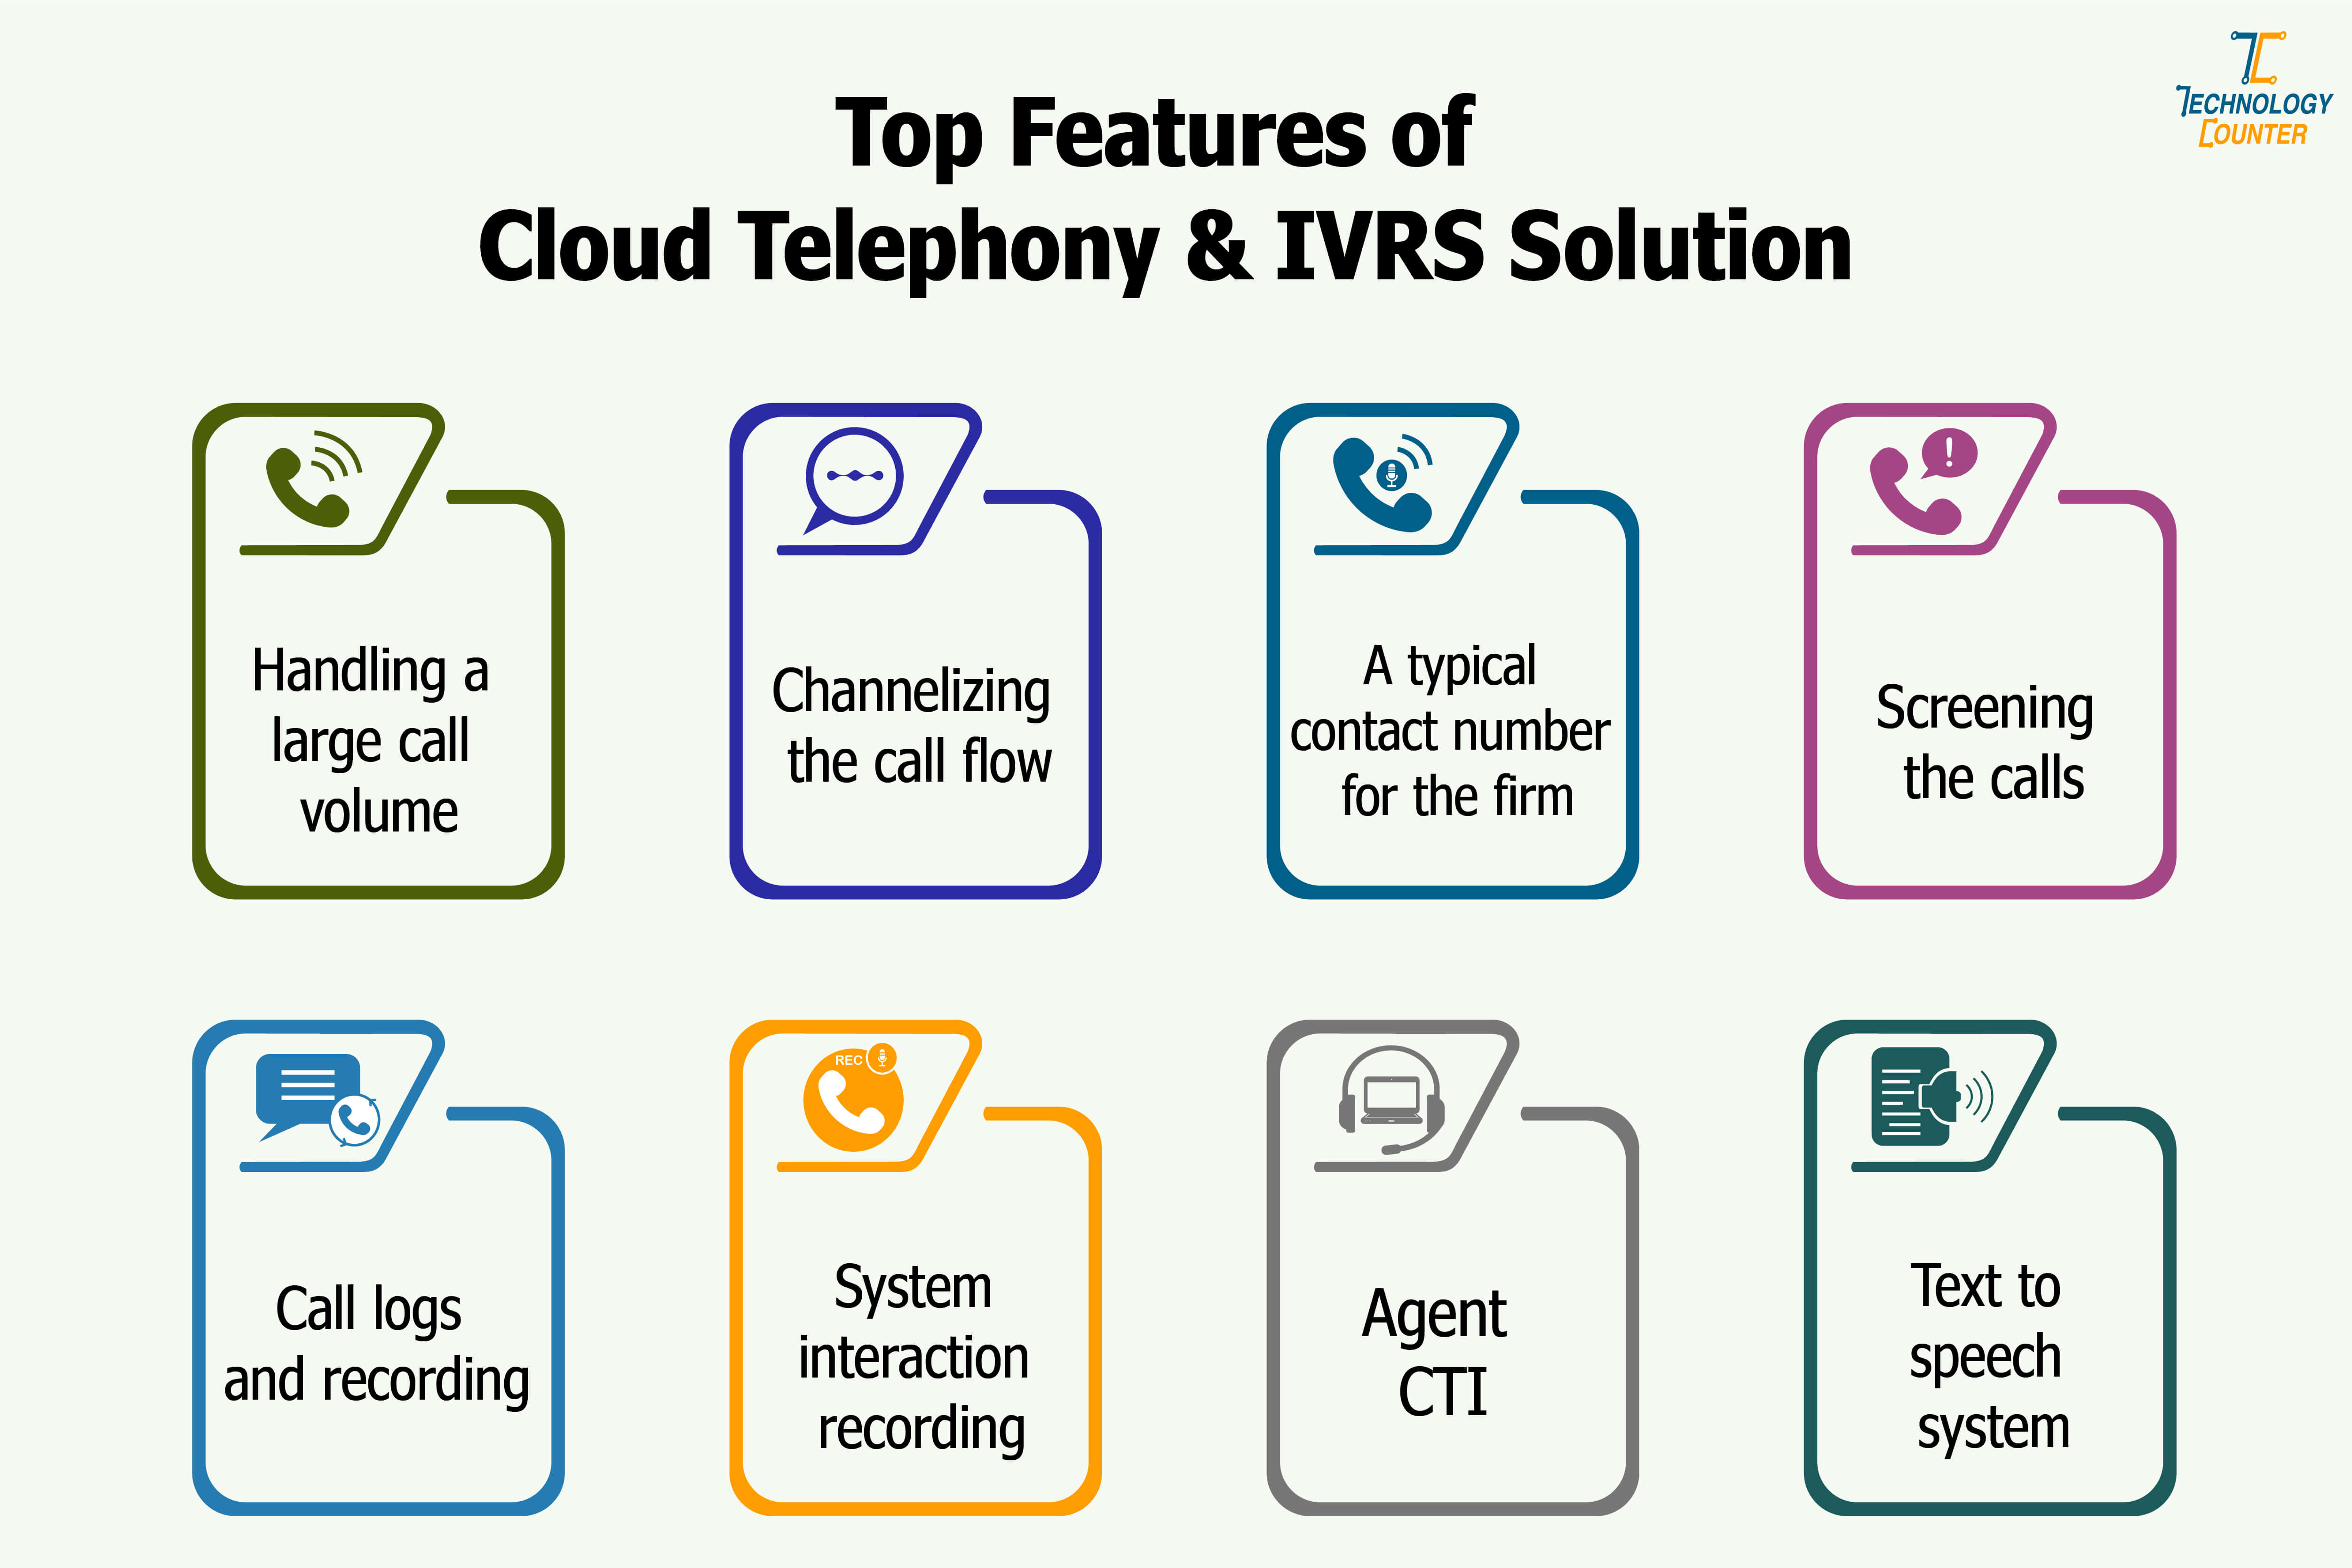 Top Features of Cloud Telephony and IVRS Solution